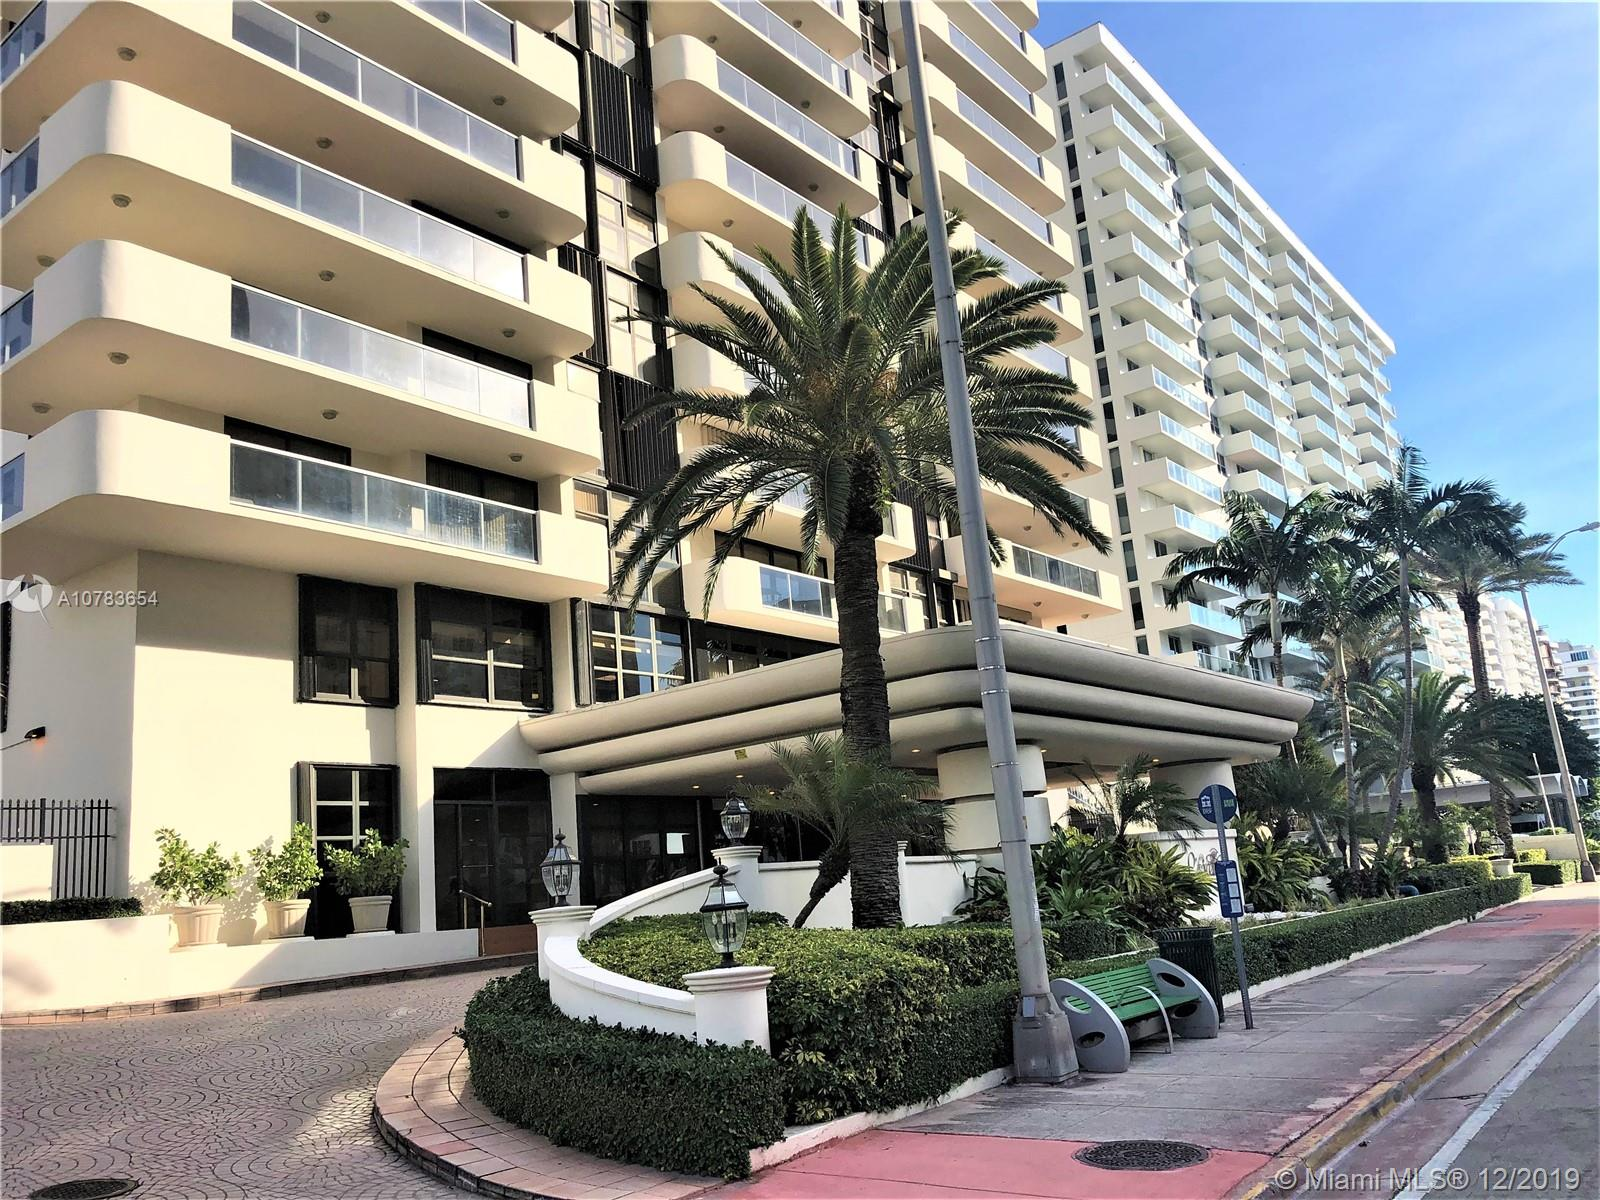 No expense spared on this beautiful condo!High end custom kitchen with Bosch appliances, washer and dryer in unit, large white porcelain tiles throughout and solid wood doors. Attention to detail and fine craftsmanship everywhere you look. Incredibly well maintained building with direct beach access. Hurricane impact windows. Turn key, move right in!